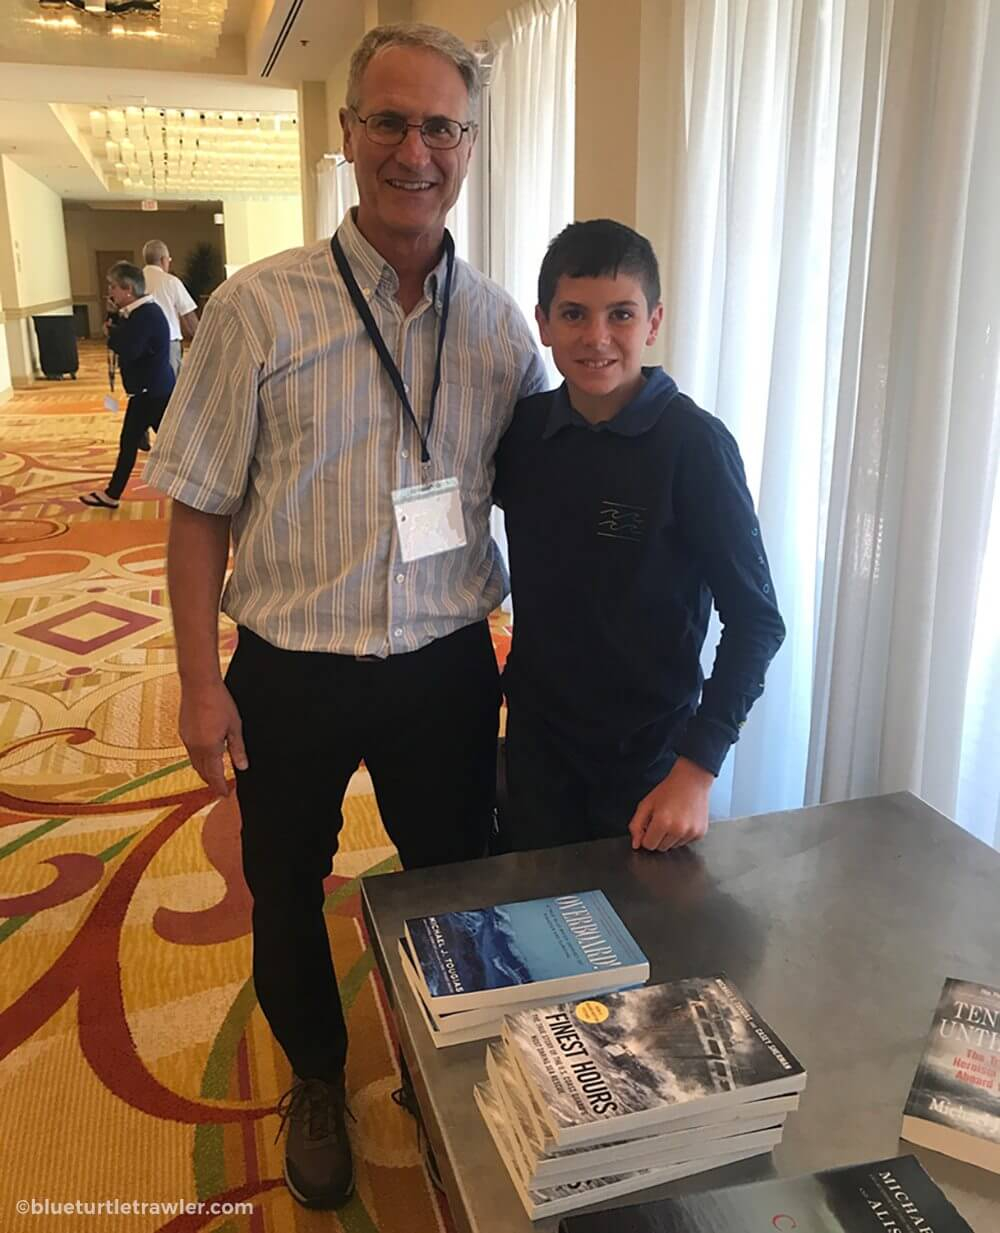 Corey got to meet author Michael Tobias of whom he's read several of his books.